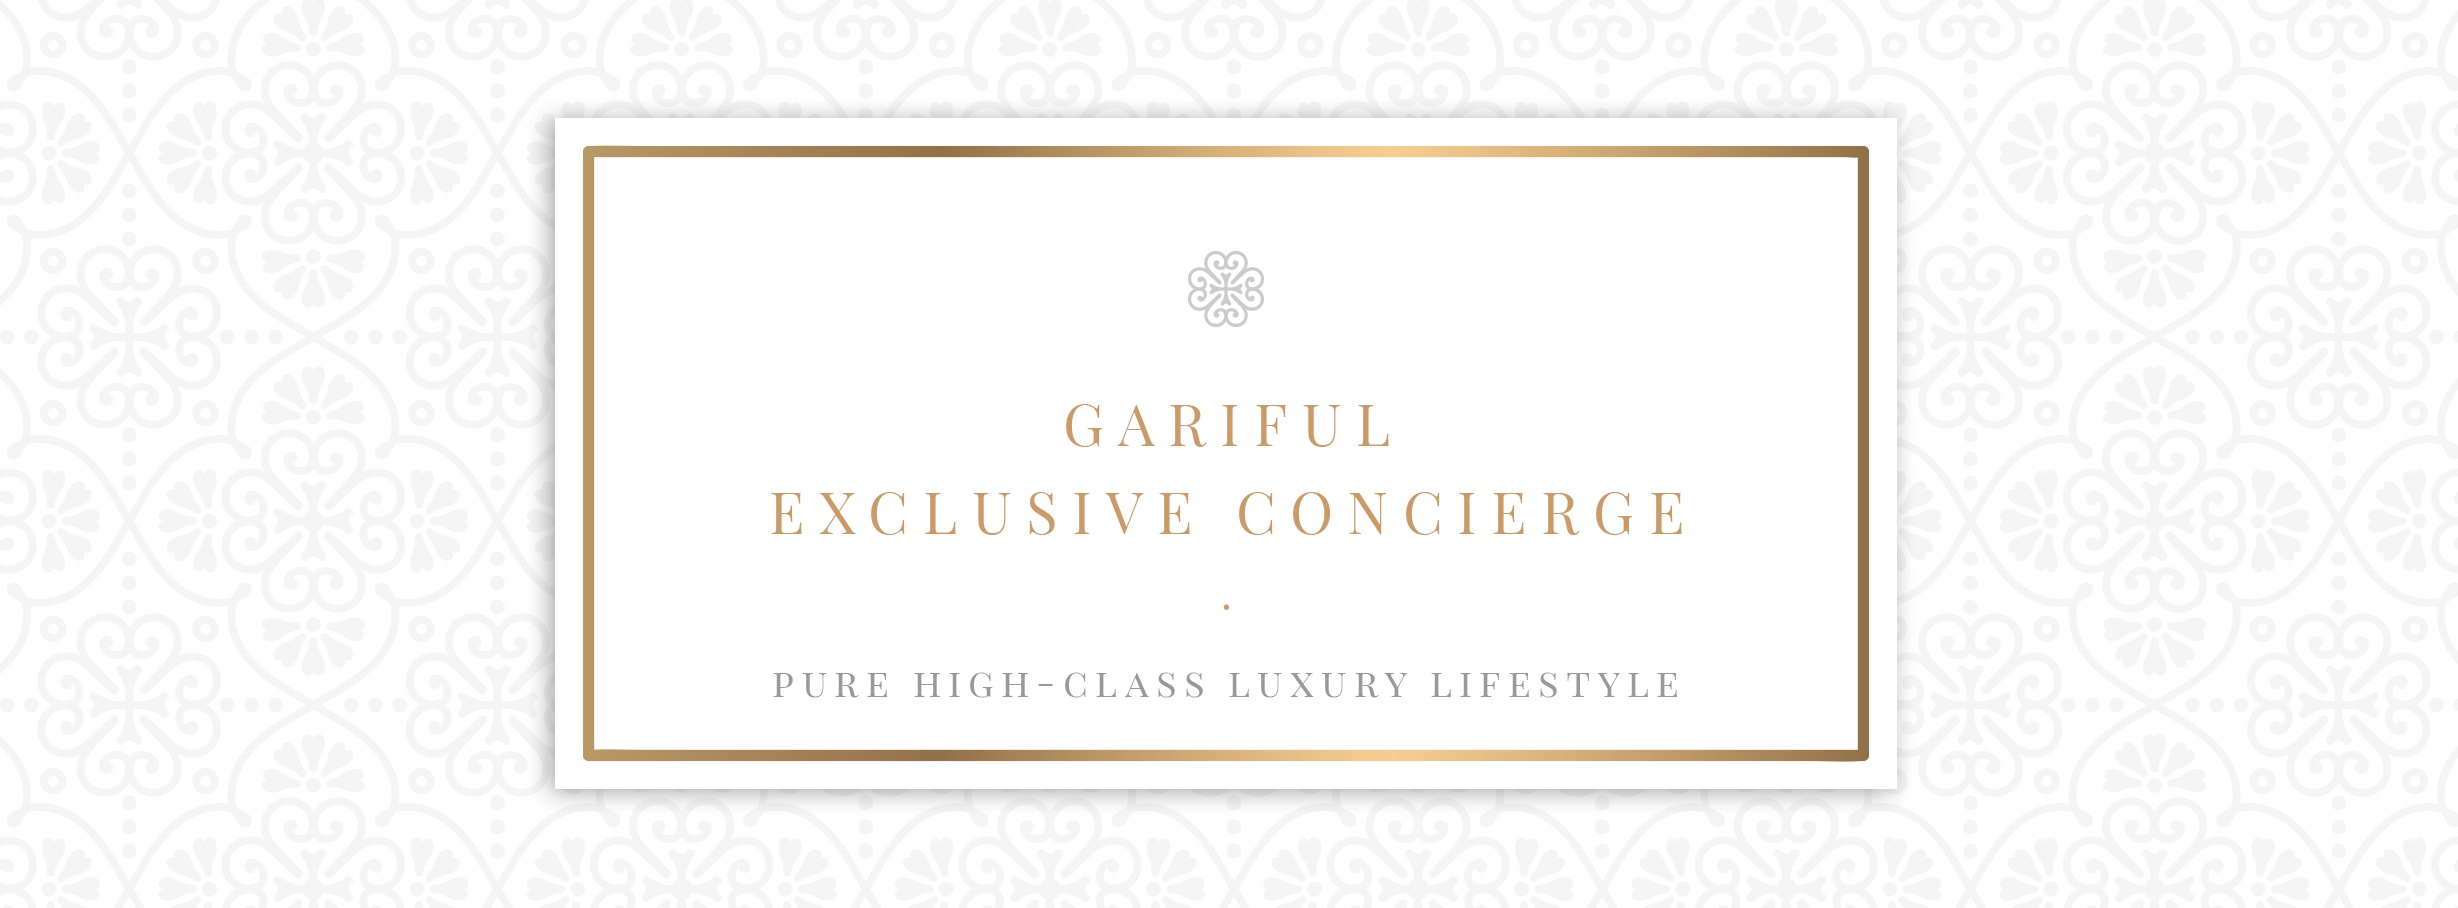 GARIFUL EXCLUSIVE CONCIERGE FOR CONNOISSEURS AND THOSE WHO ALWAYS WANT MORE